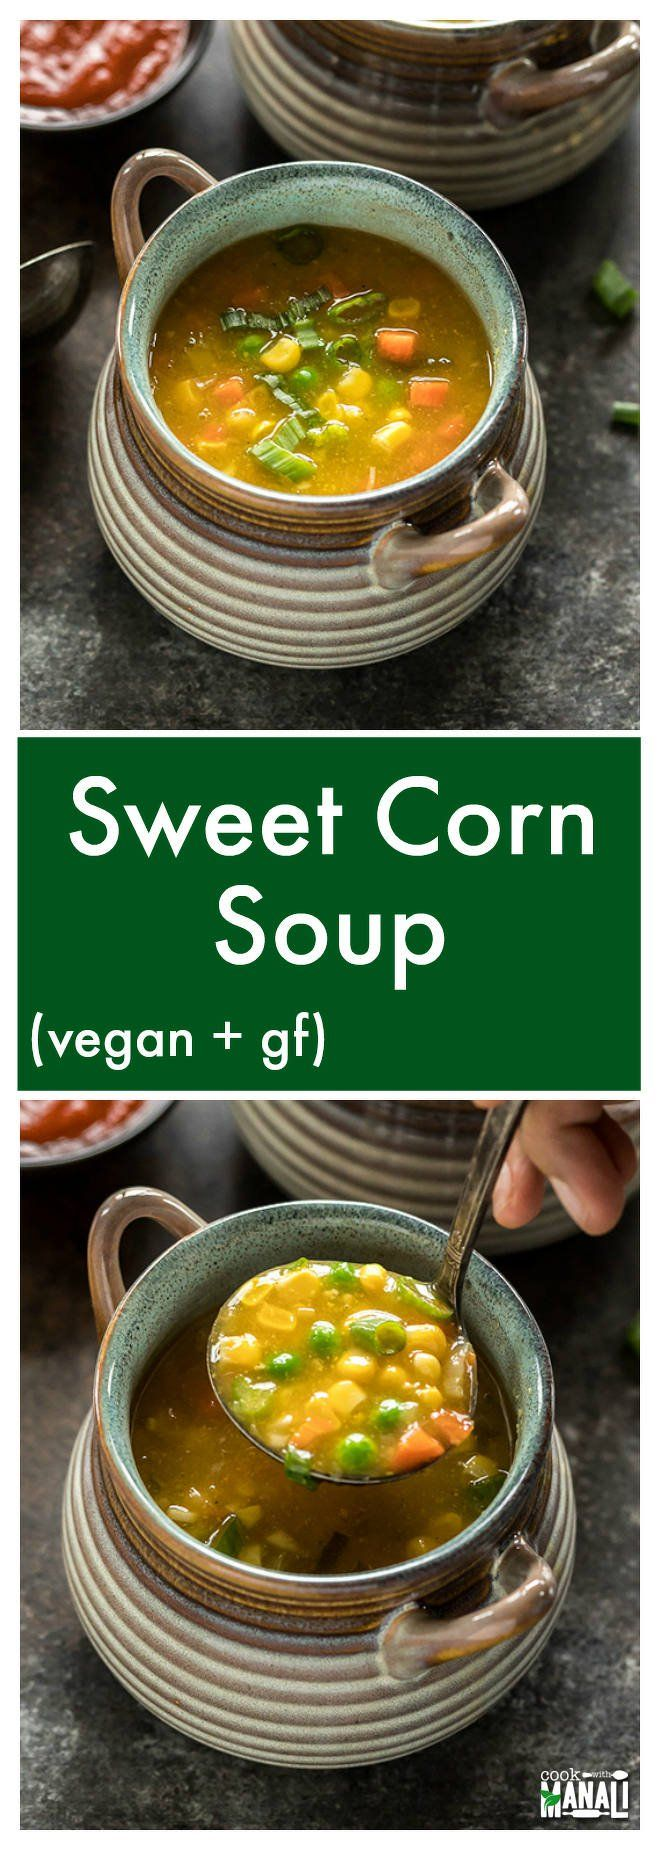 Famous Indo Chinese Sweet Corn Soup is lightly spiced and made with sweet corns, carrots, green peas and spring onions! It's vegan & gluten-free. via @cookwithmanali